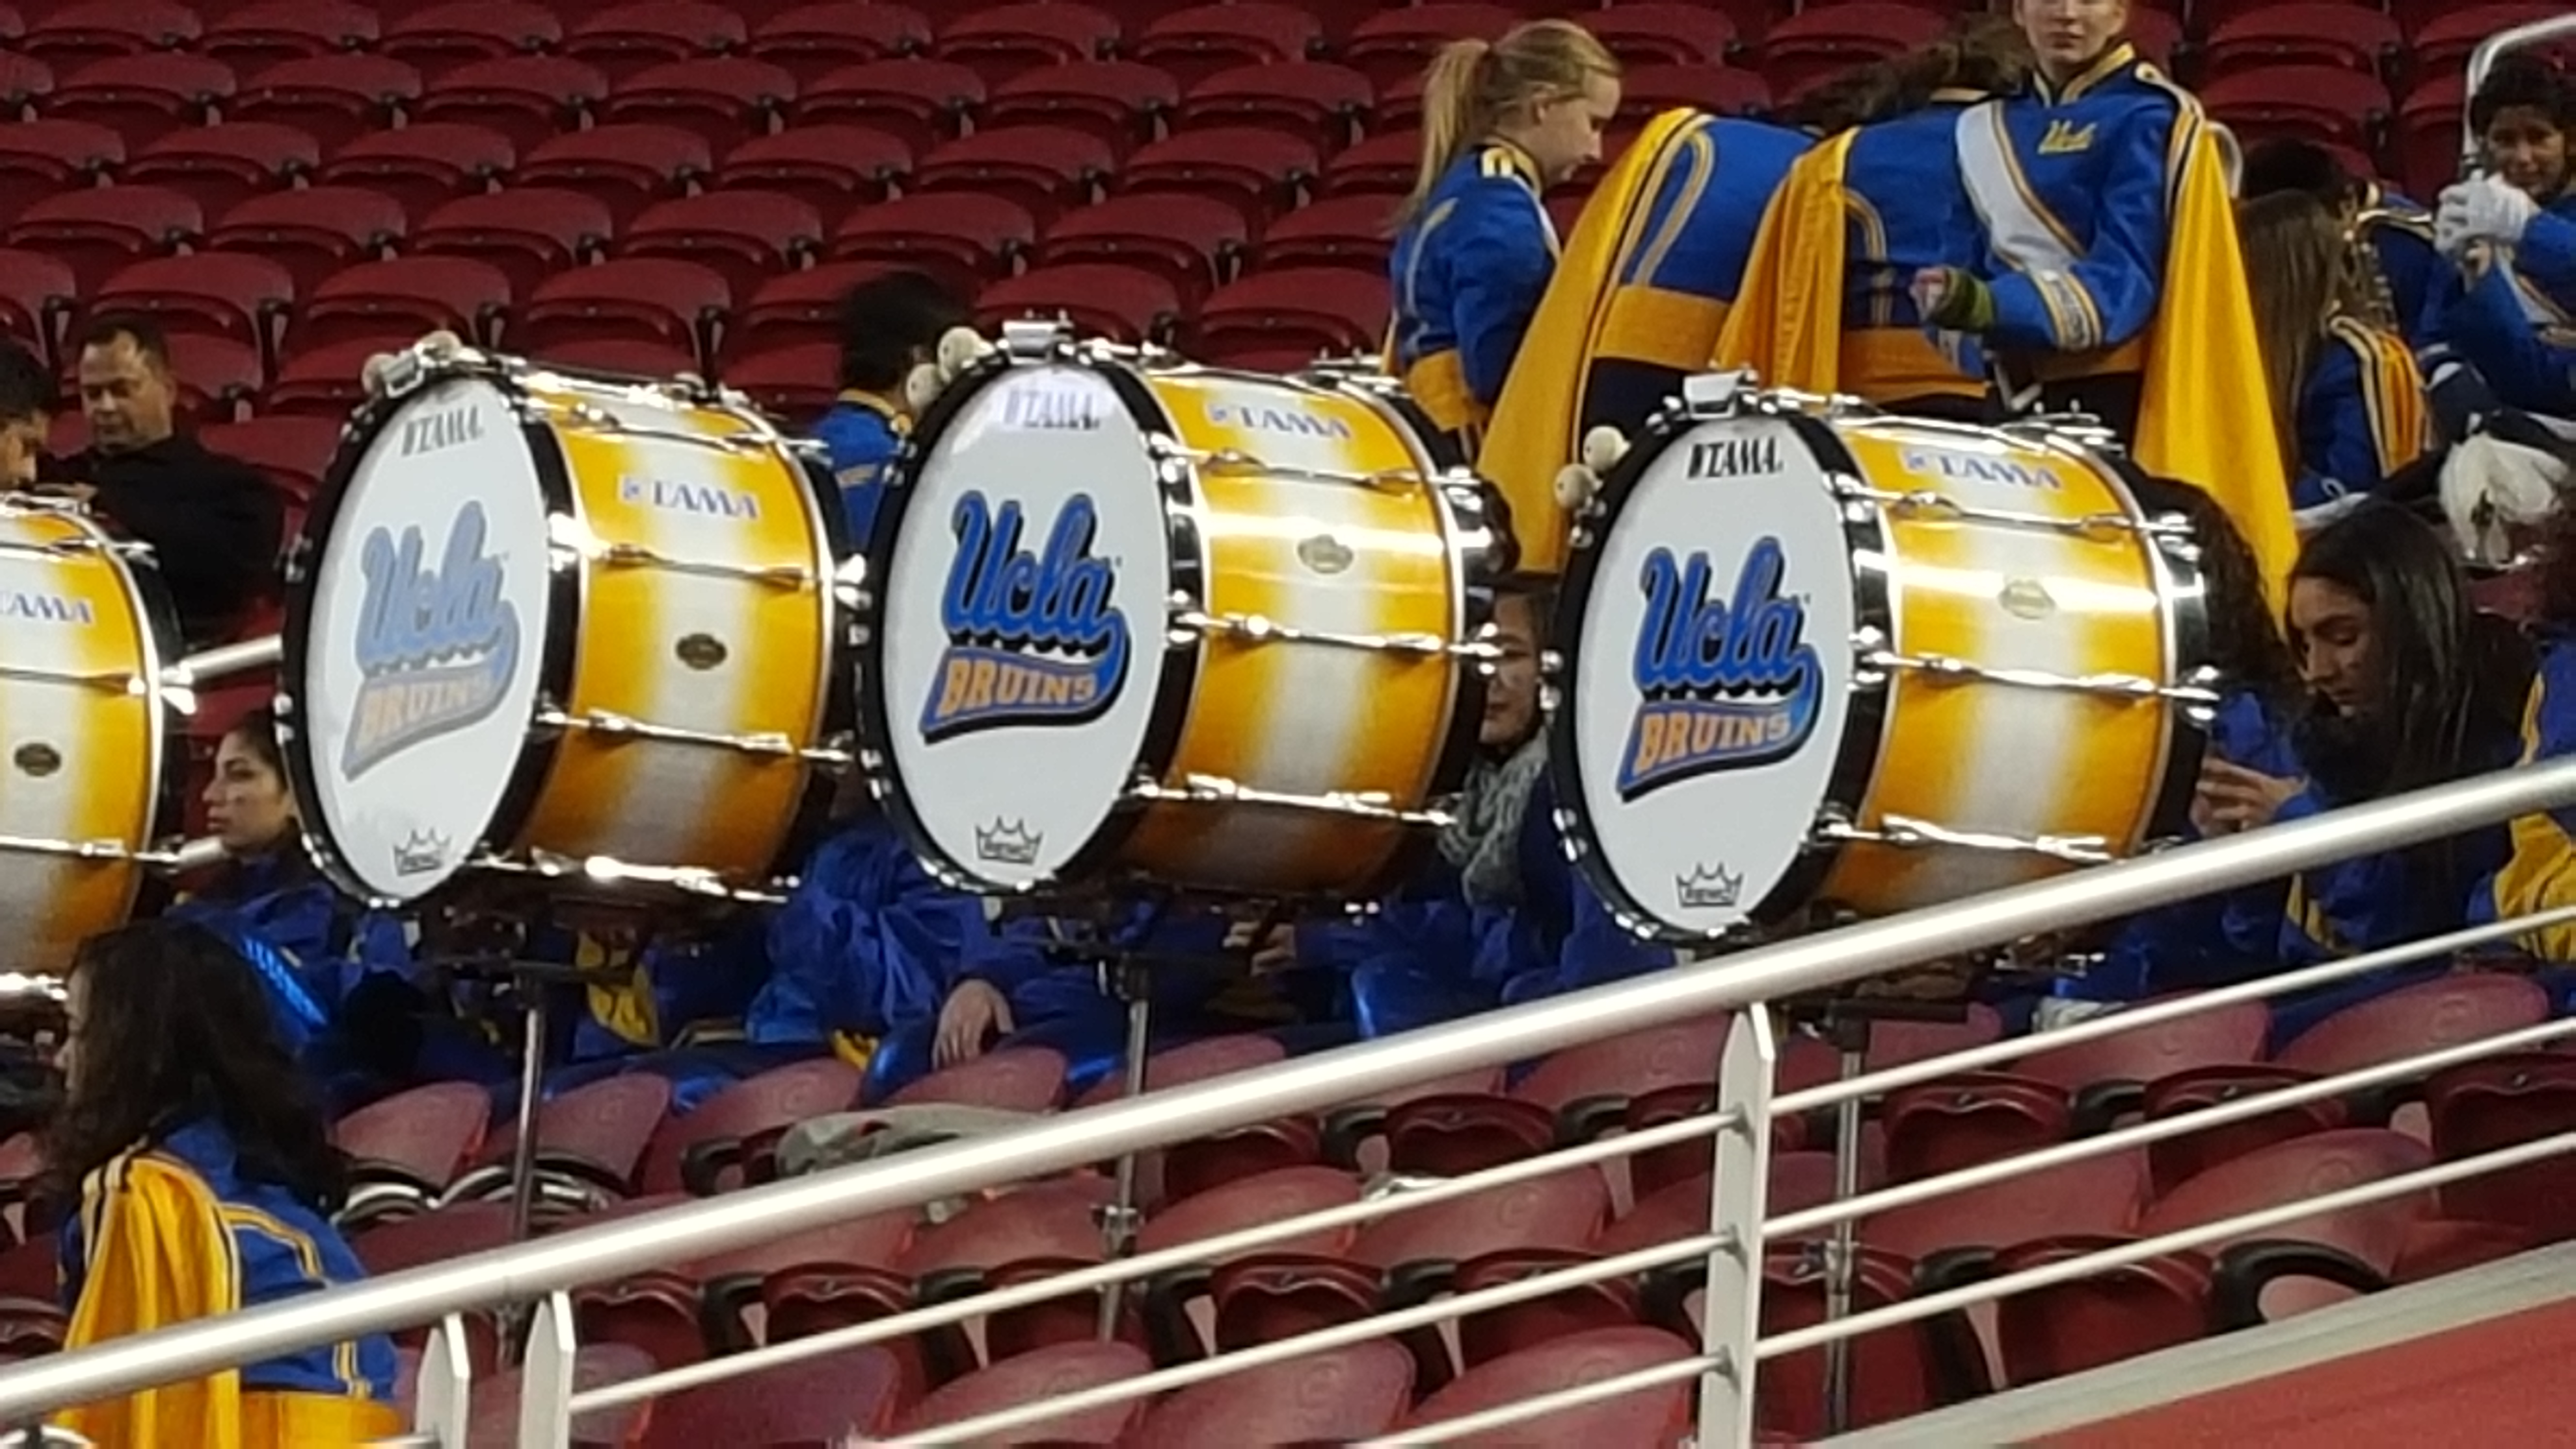 ucla football foster farms bowl photo essay page 3 ucla ing band drum line before the 2015 foster farms bowl levi s stadium santa